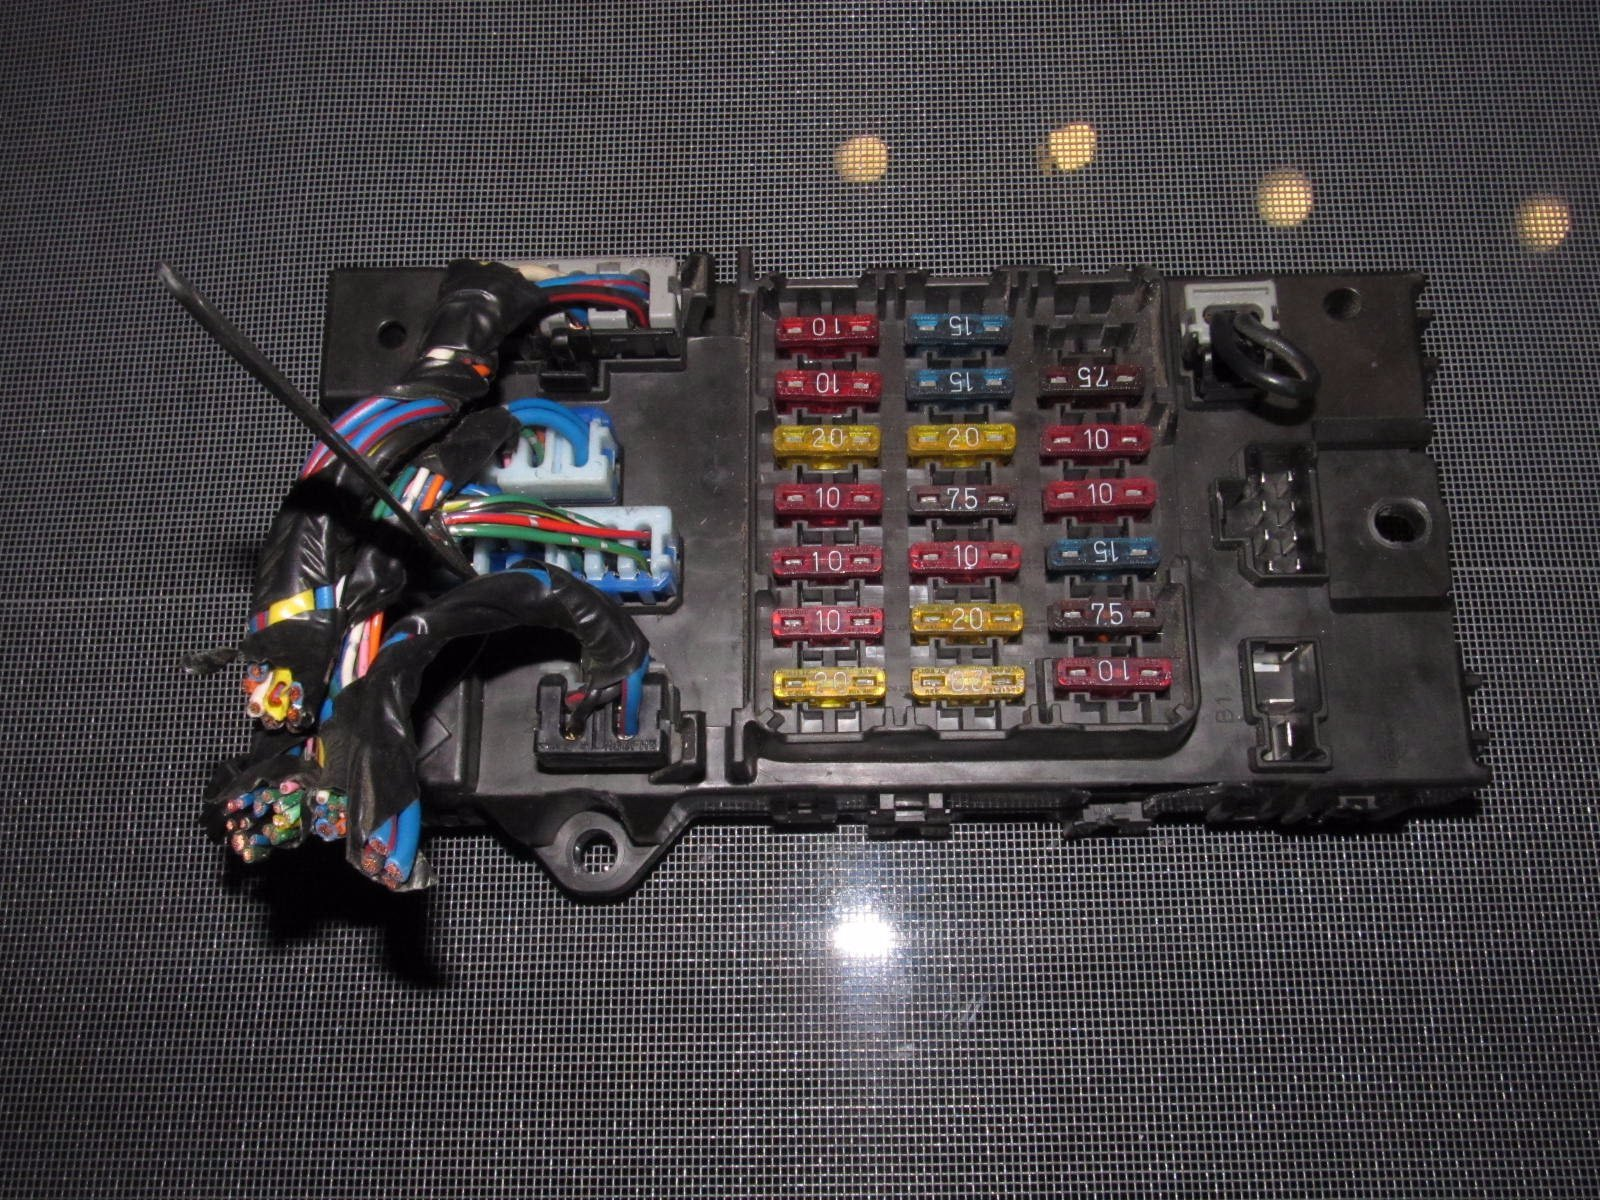 90 96 nissan 300zx oem interior fuse box autopartone com on Ford Mustang Fuse Box Diagram for 90 96 nissan 300zx oem interior fuse box at 2004 Taurus Fuse Box Diagram